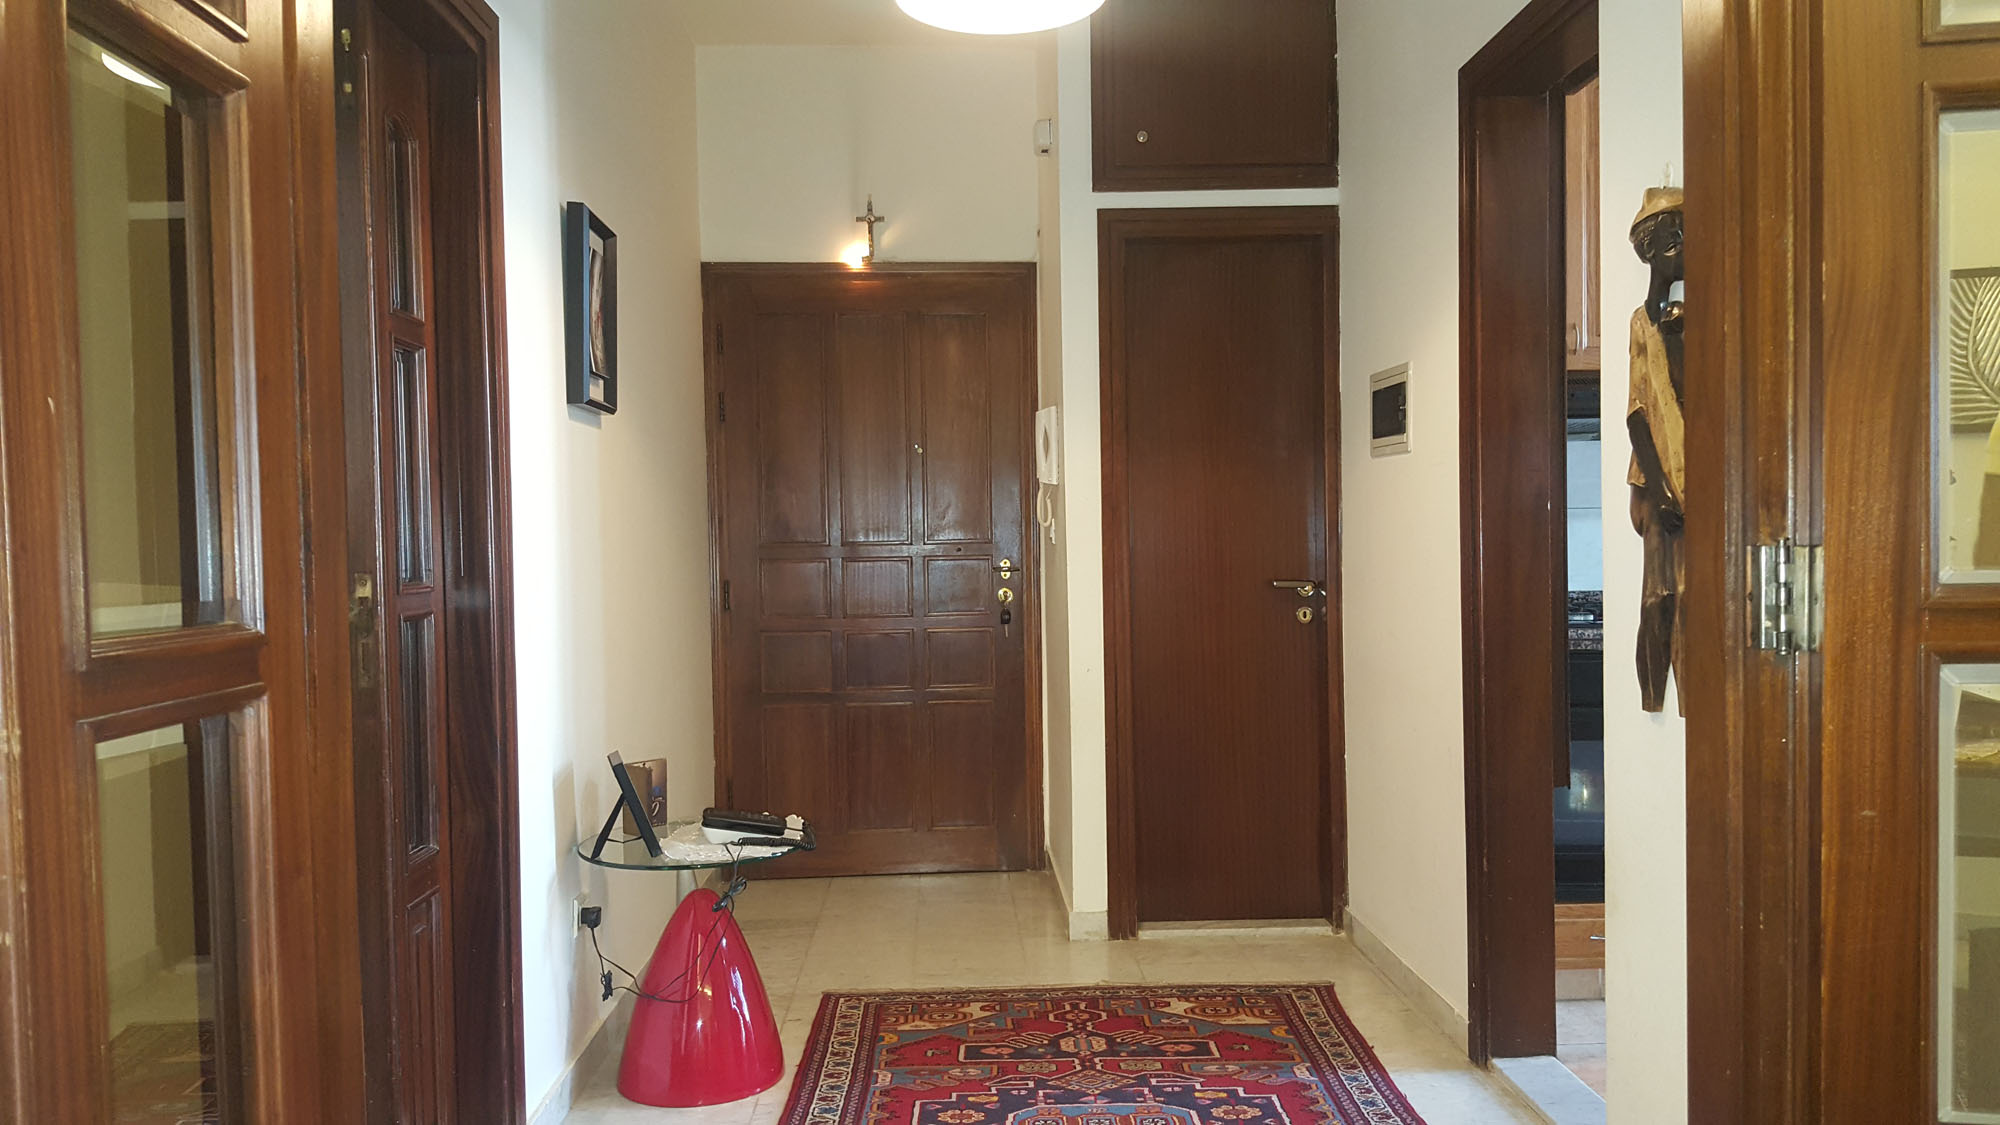 2 Bedrooms Apartment for Sale  in Mar Takla